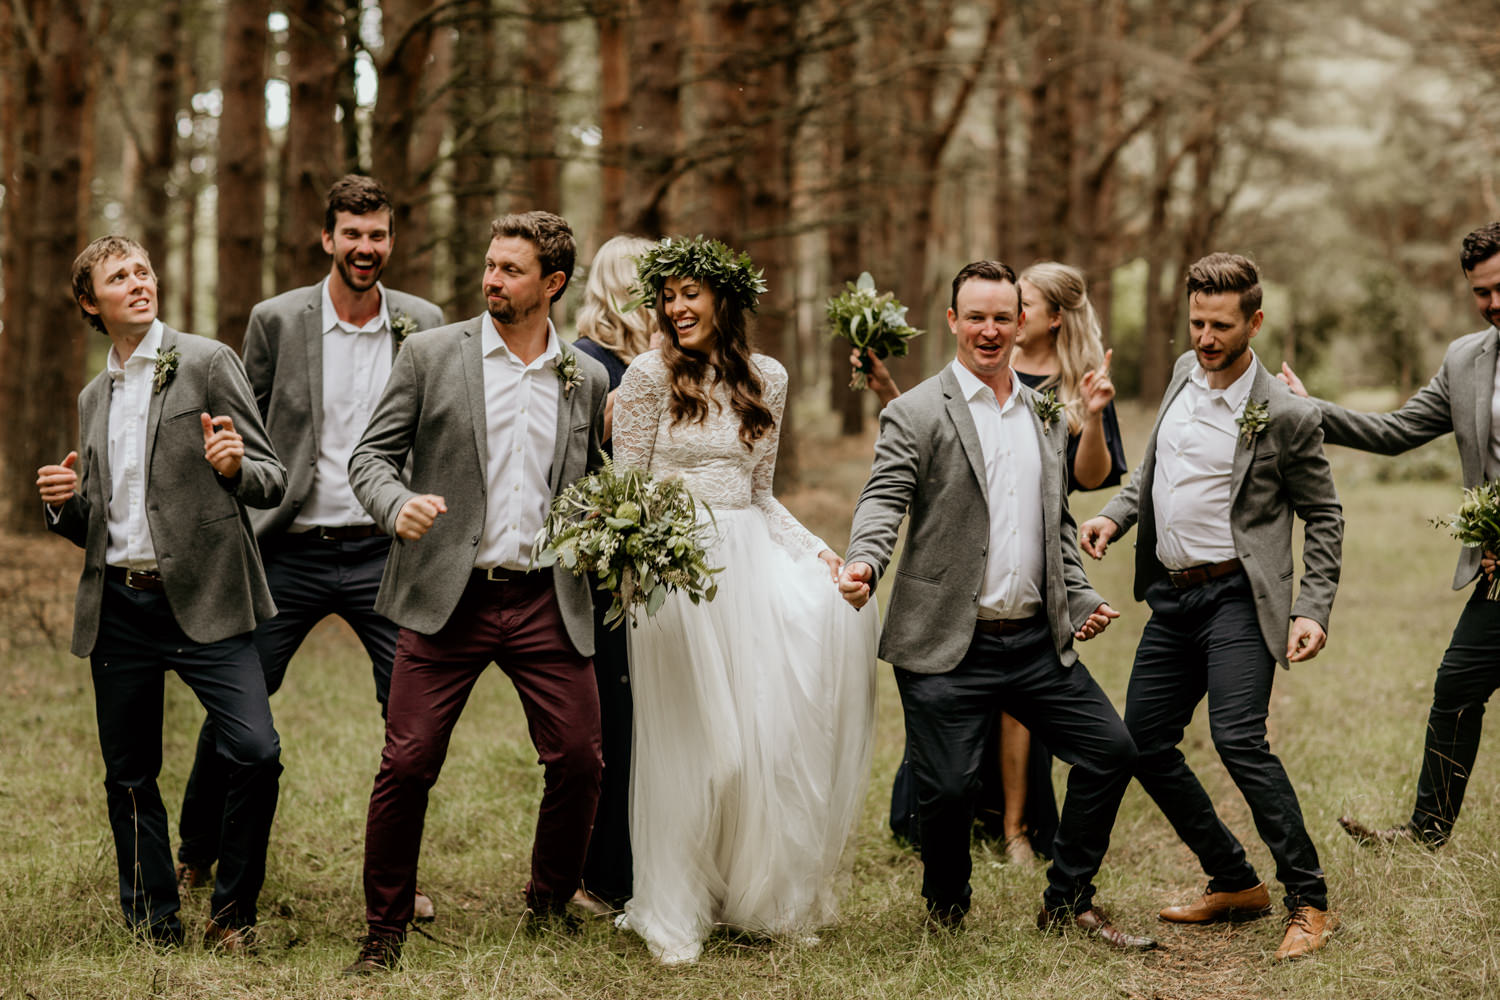 bride and groomsmen for a fun portrait shoot in the forest in Scotland